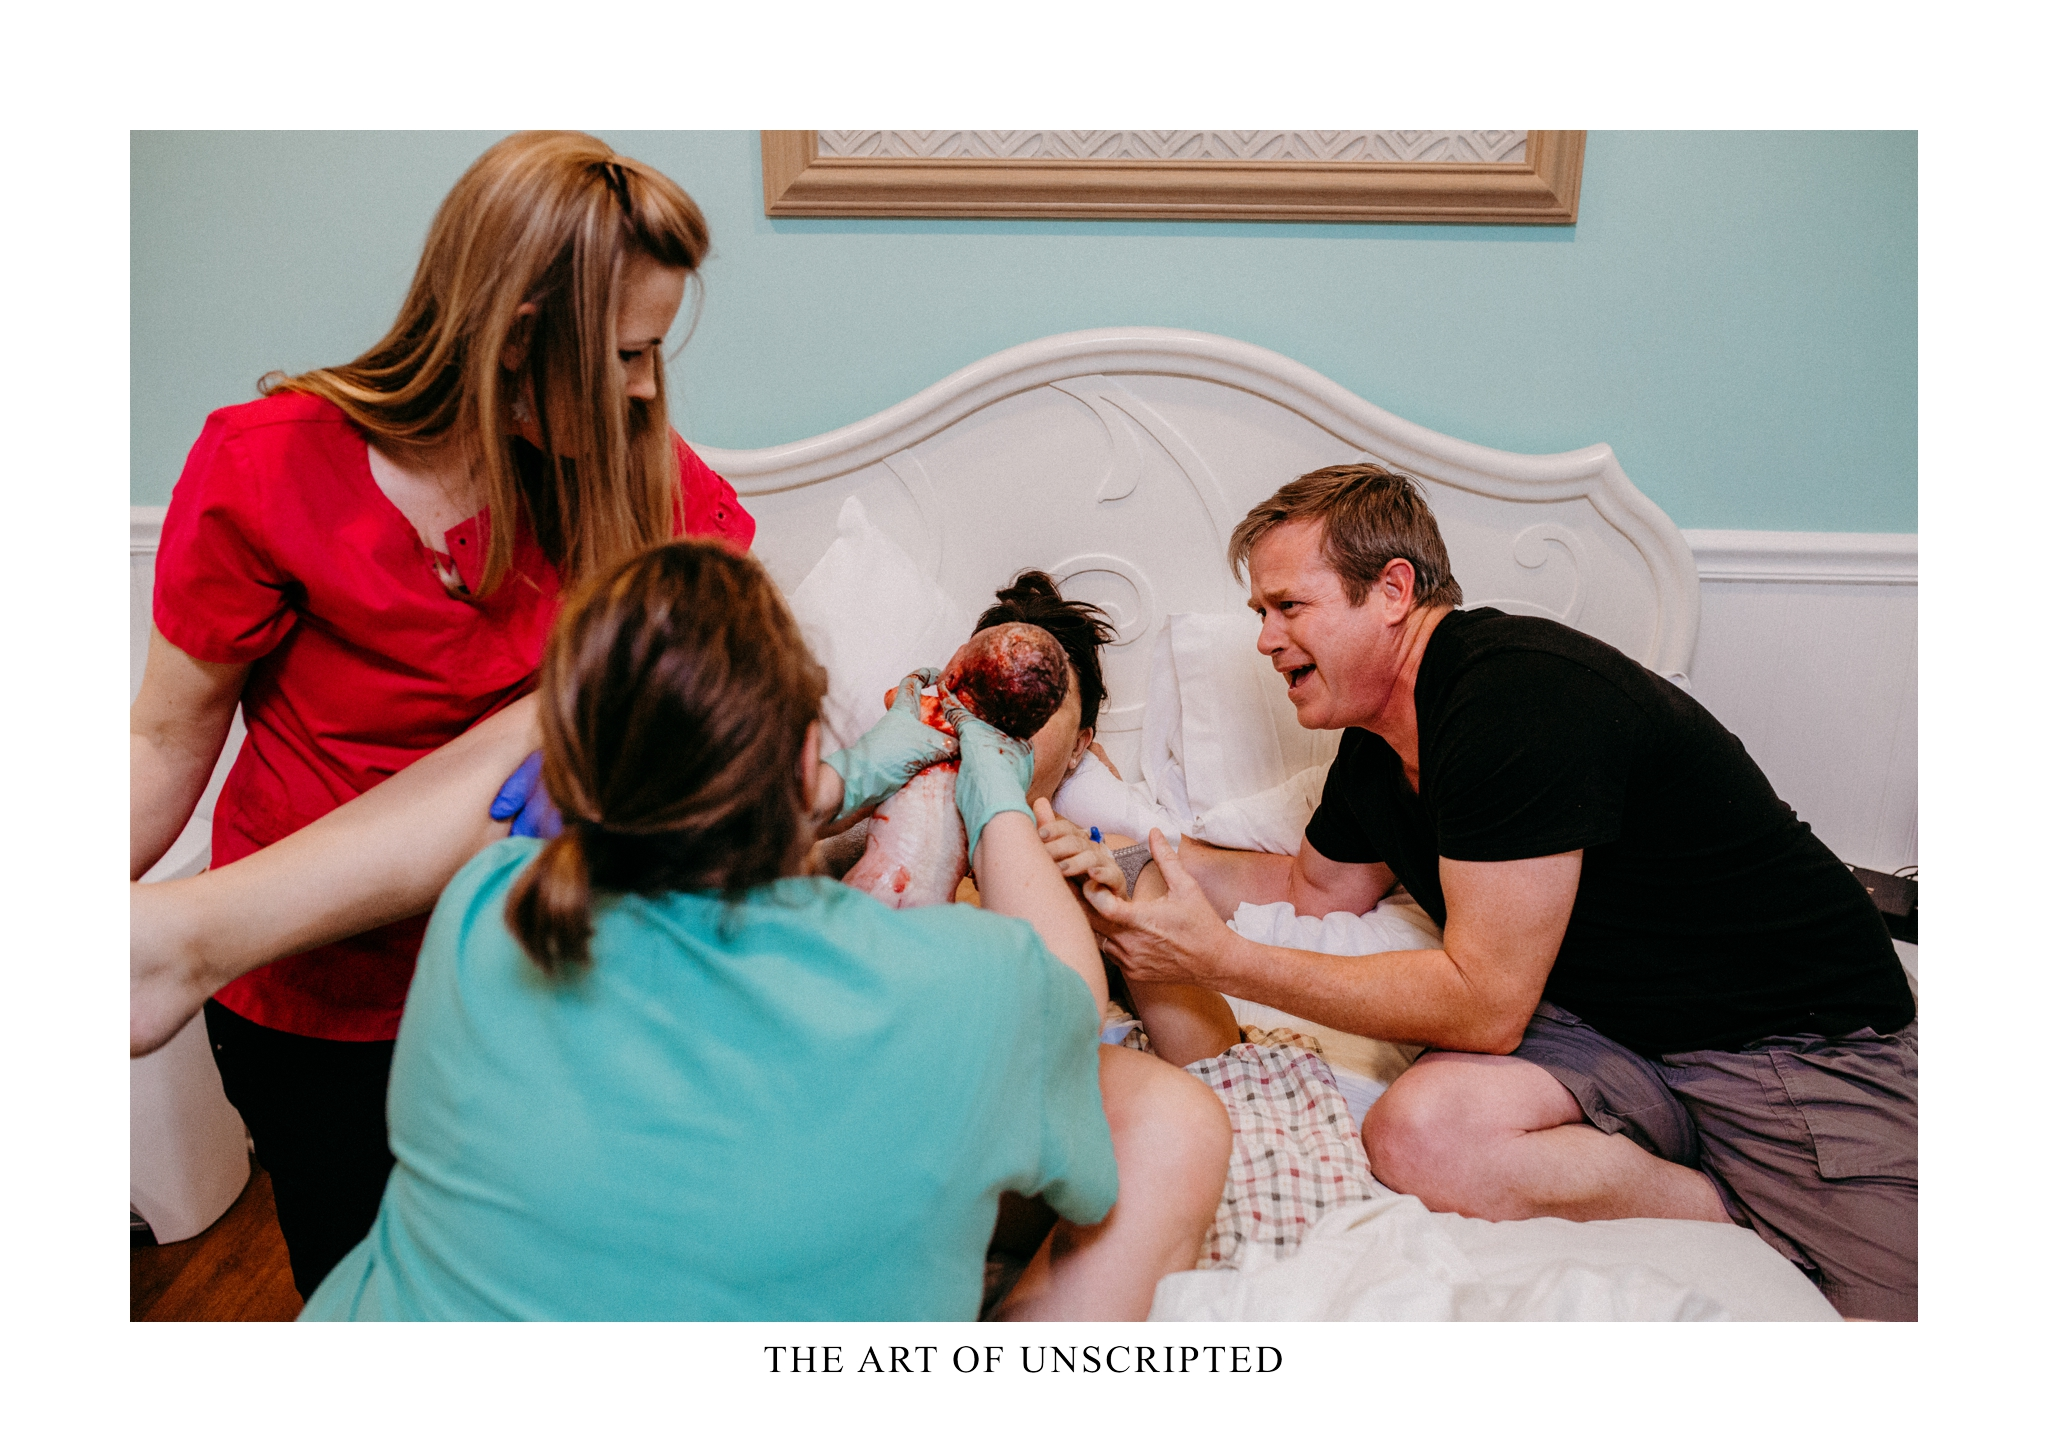 2017-06-11_001429__THE ART OF UNSCRIPTED_SPRINGFIELD MO_BIRTH PHOTOGRAPHER_ DOCUMENTARY_STORYTELLING_417_PHOTOGRAPHER